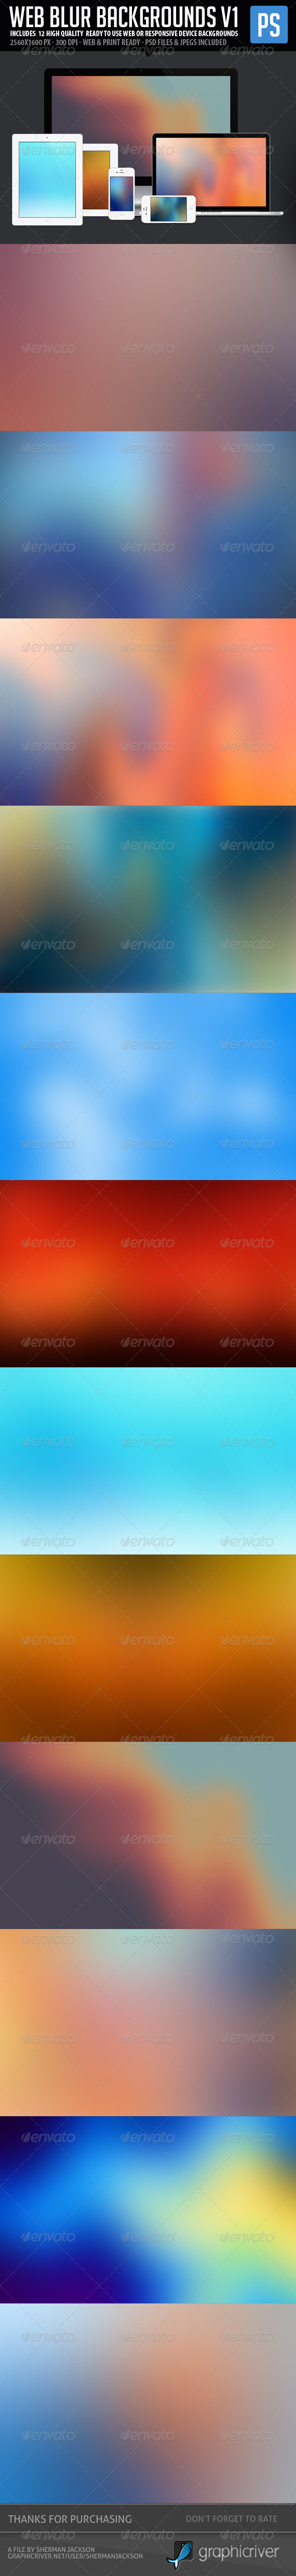 GraphicRiver Web Blur Backgrounds 12 in 1 hi-res 5875669